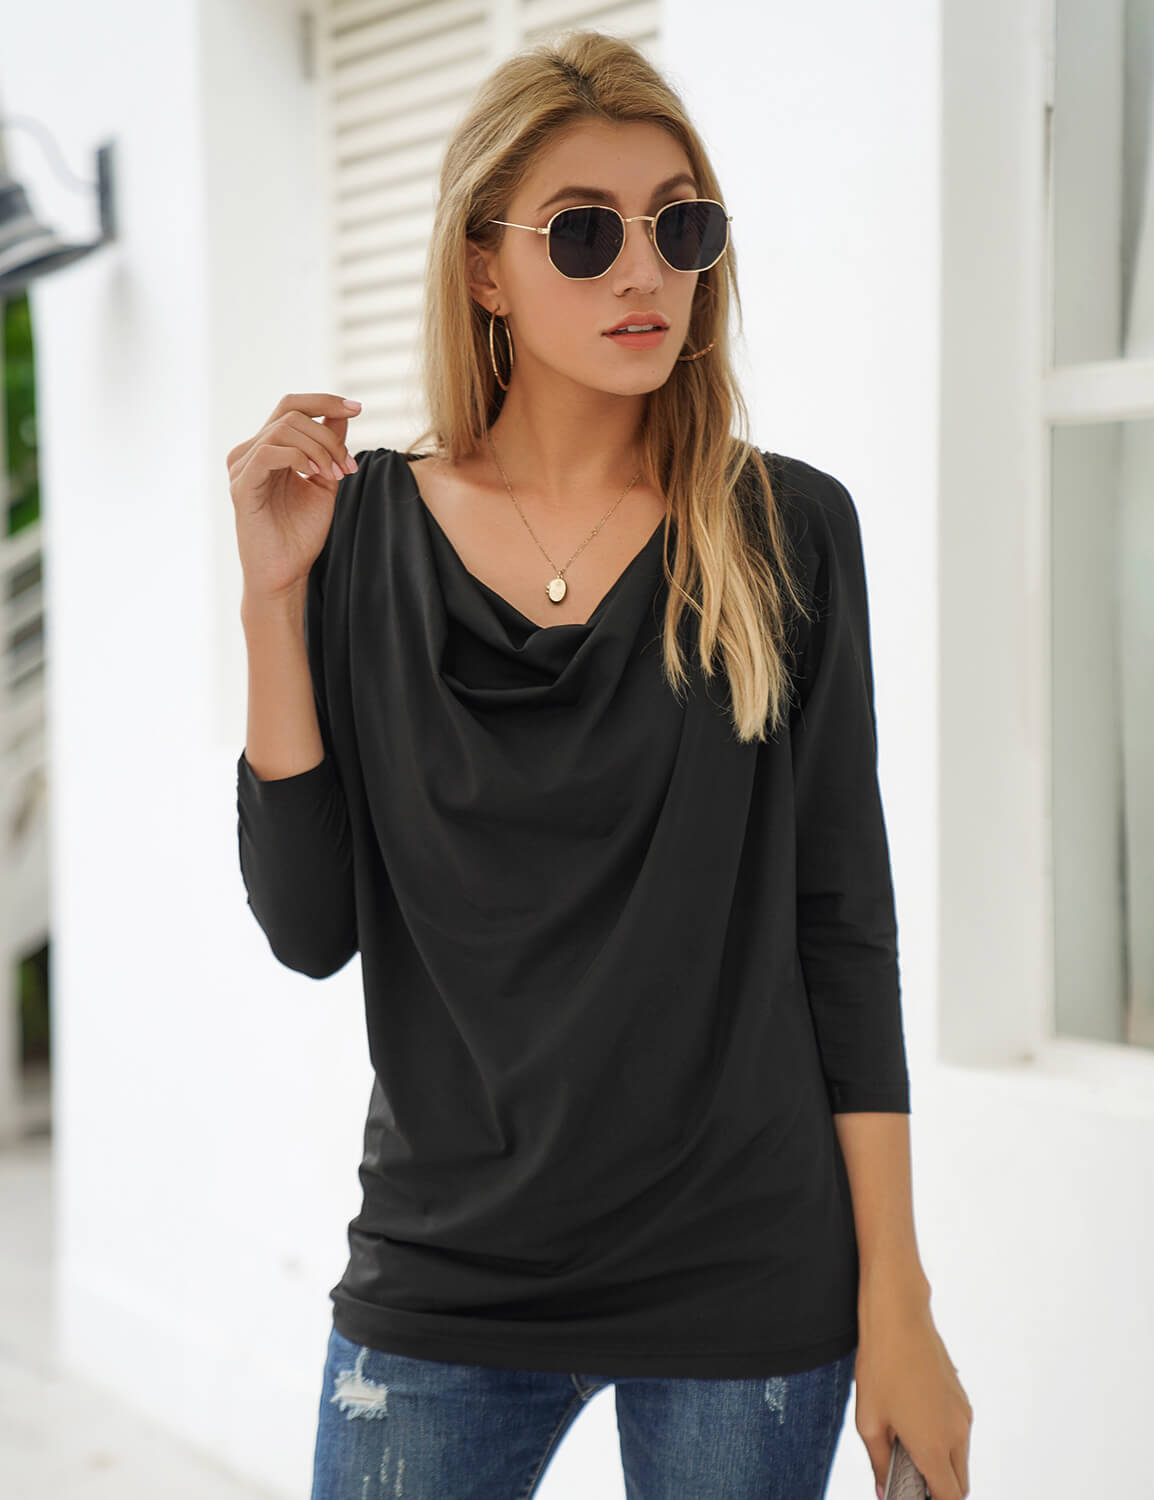 Blooming Jelly_Elegant Casual Hollow Out Blouse_Black_154070_02_Women Chic Loose Outfits_Tops_Blouse